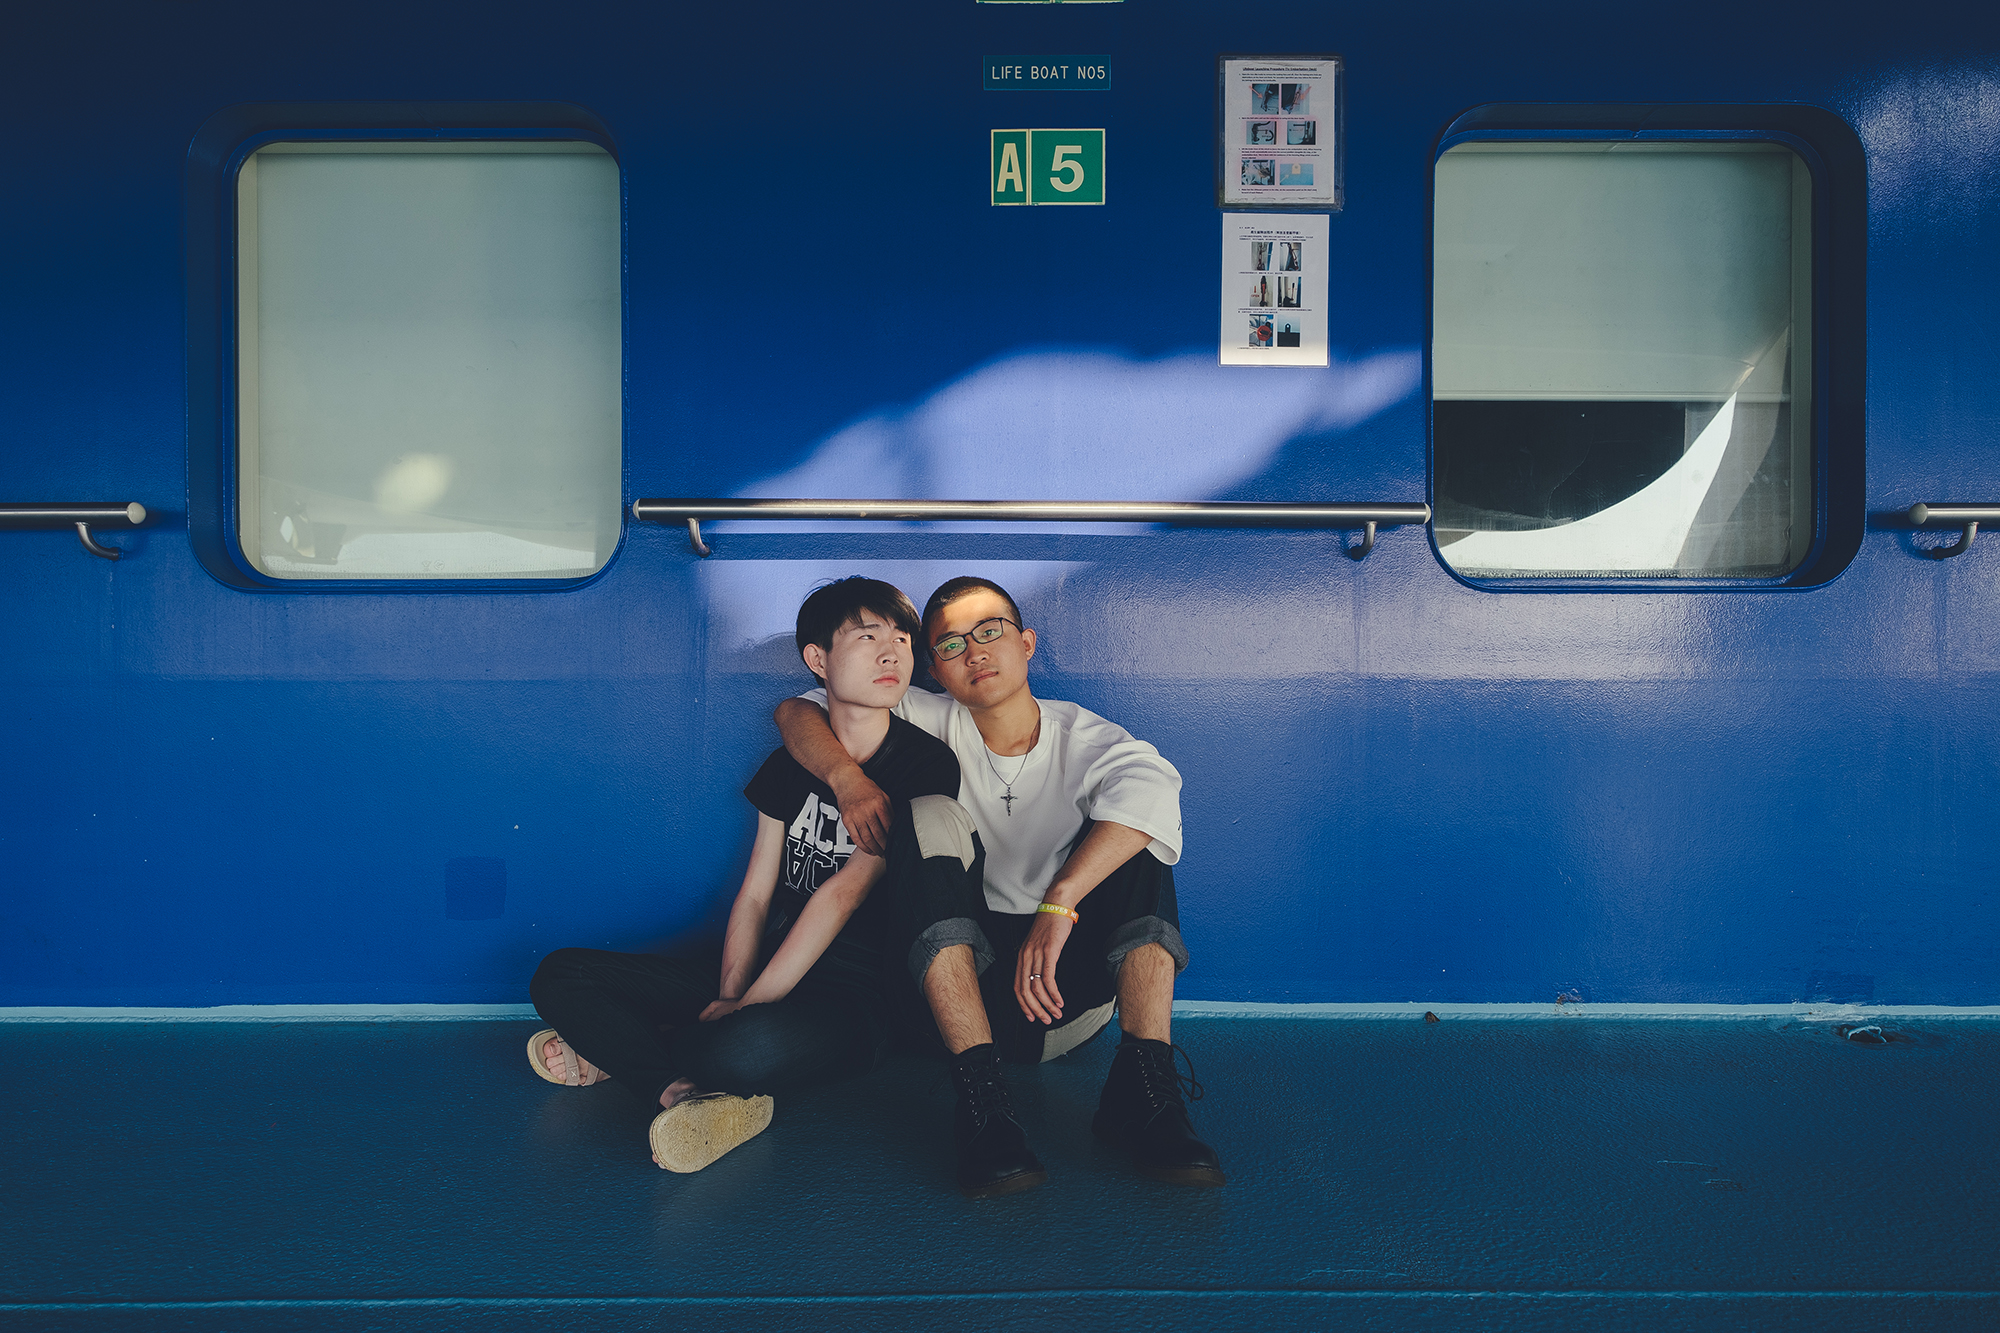 "Wang Yunshen and Hu Hu are another couple who wed on the cruise. Wang is 22 and Hu Hu is 19. The legal age of marriage for men in China is 22. They met last year. ""It is important for LGBTQ people to come out of the closet because self-identity matters,"" said Wang. None of their parents are on board."